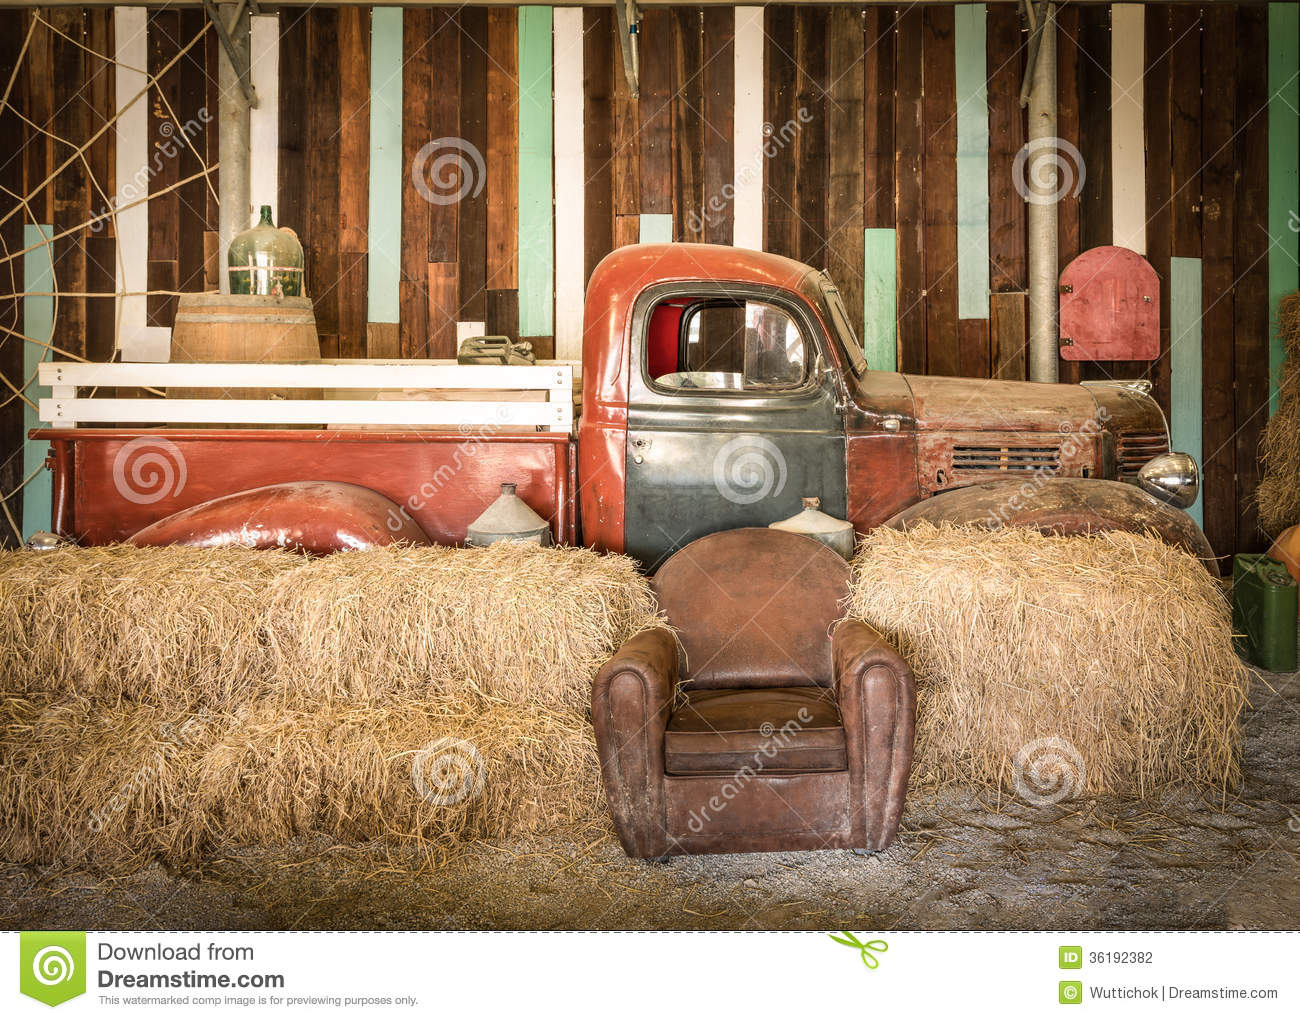 Brown Sofa And Red Pickup Inside The Room Stock Photo